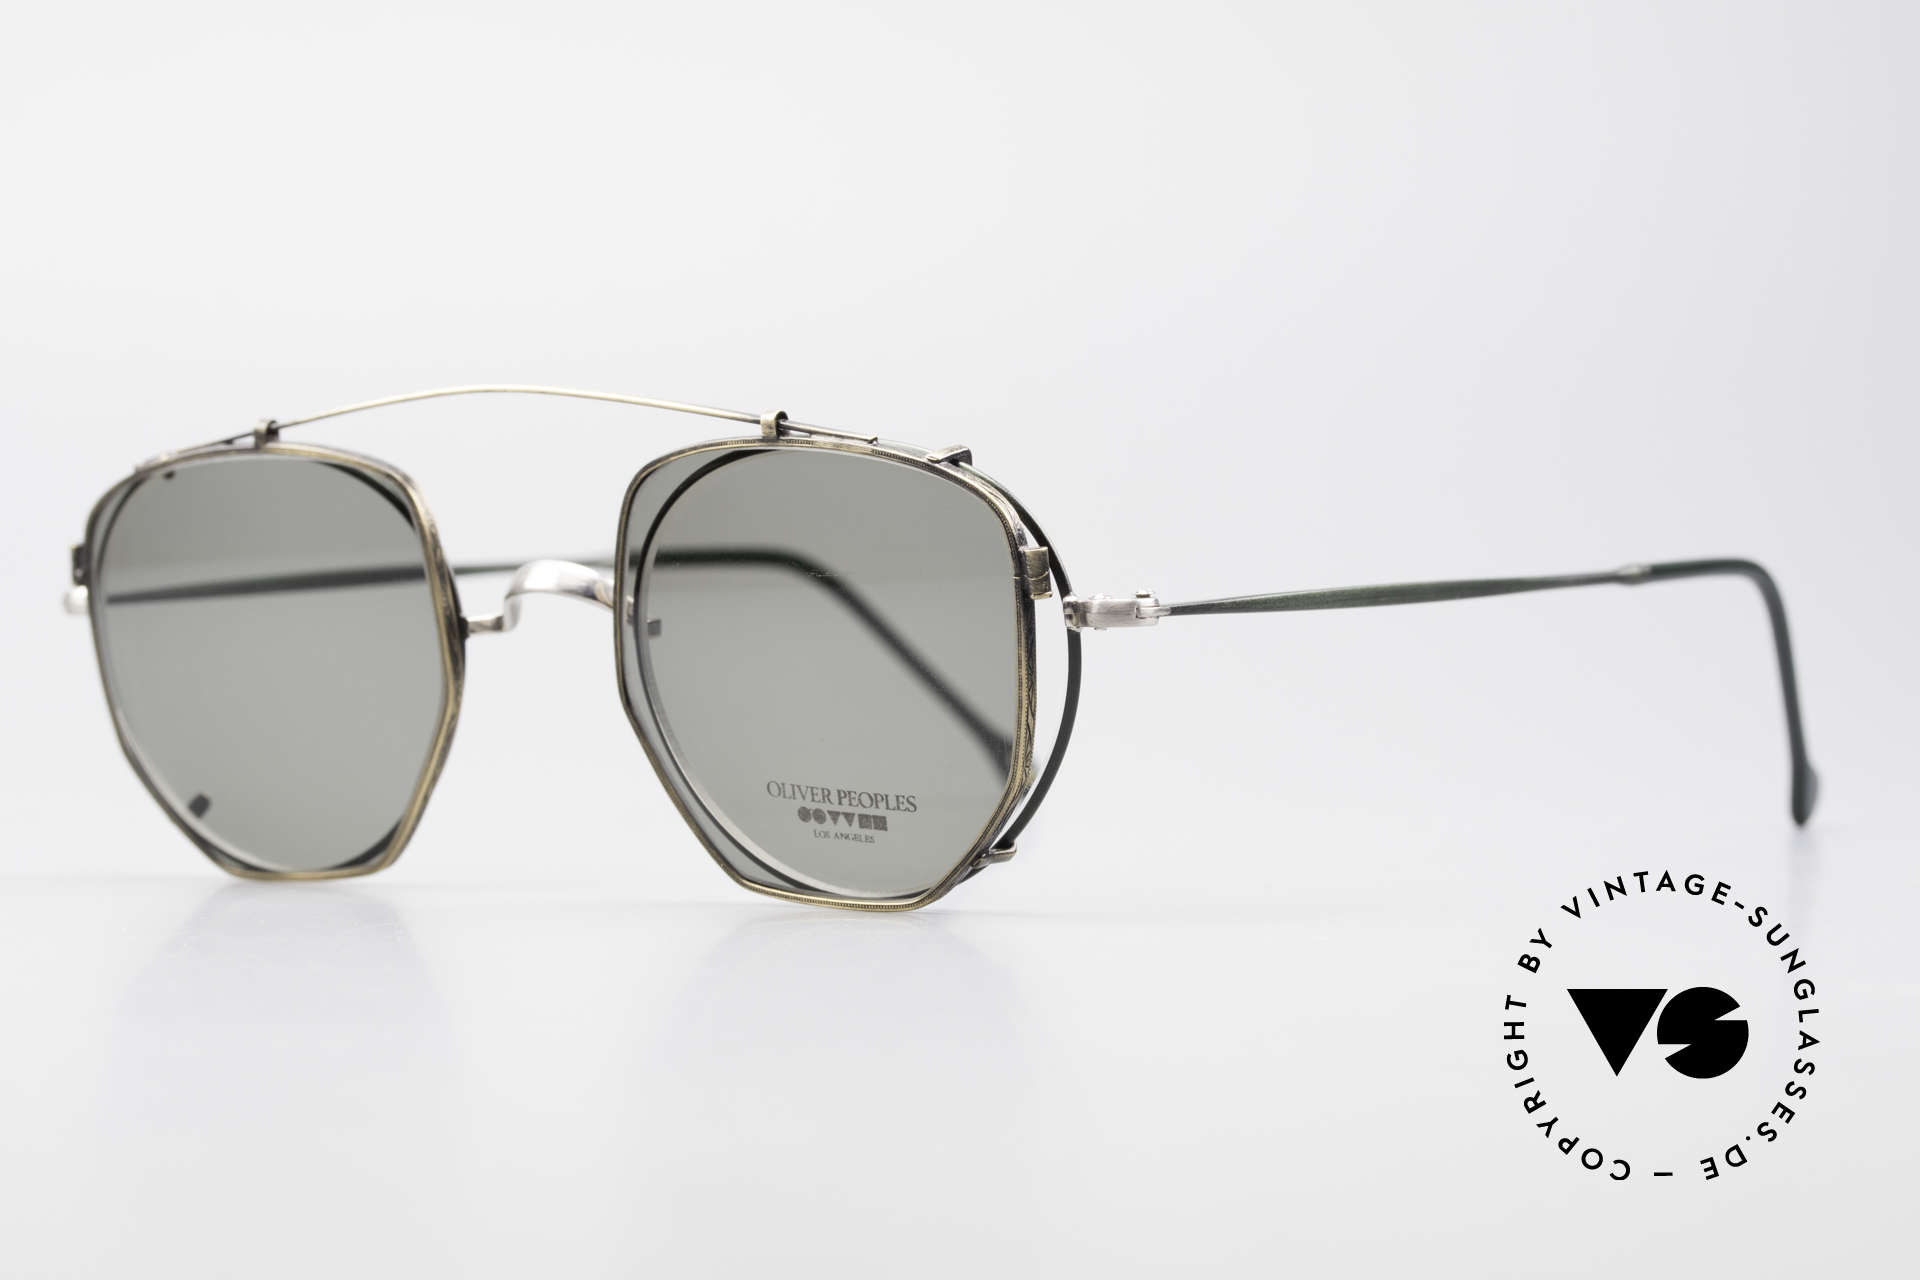 Oliver Peoples OP80BC Round Frame Square Clip On, round mod. OP80BC with fir green/silver  frame finish, Made for Men and Women